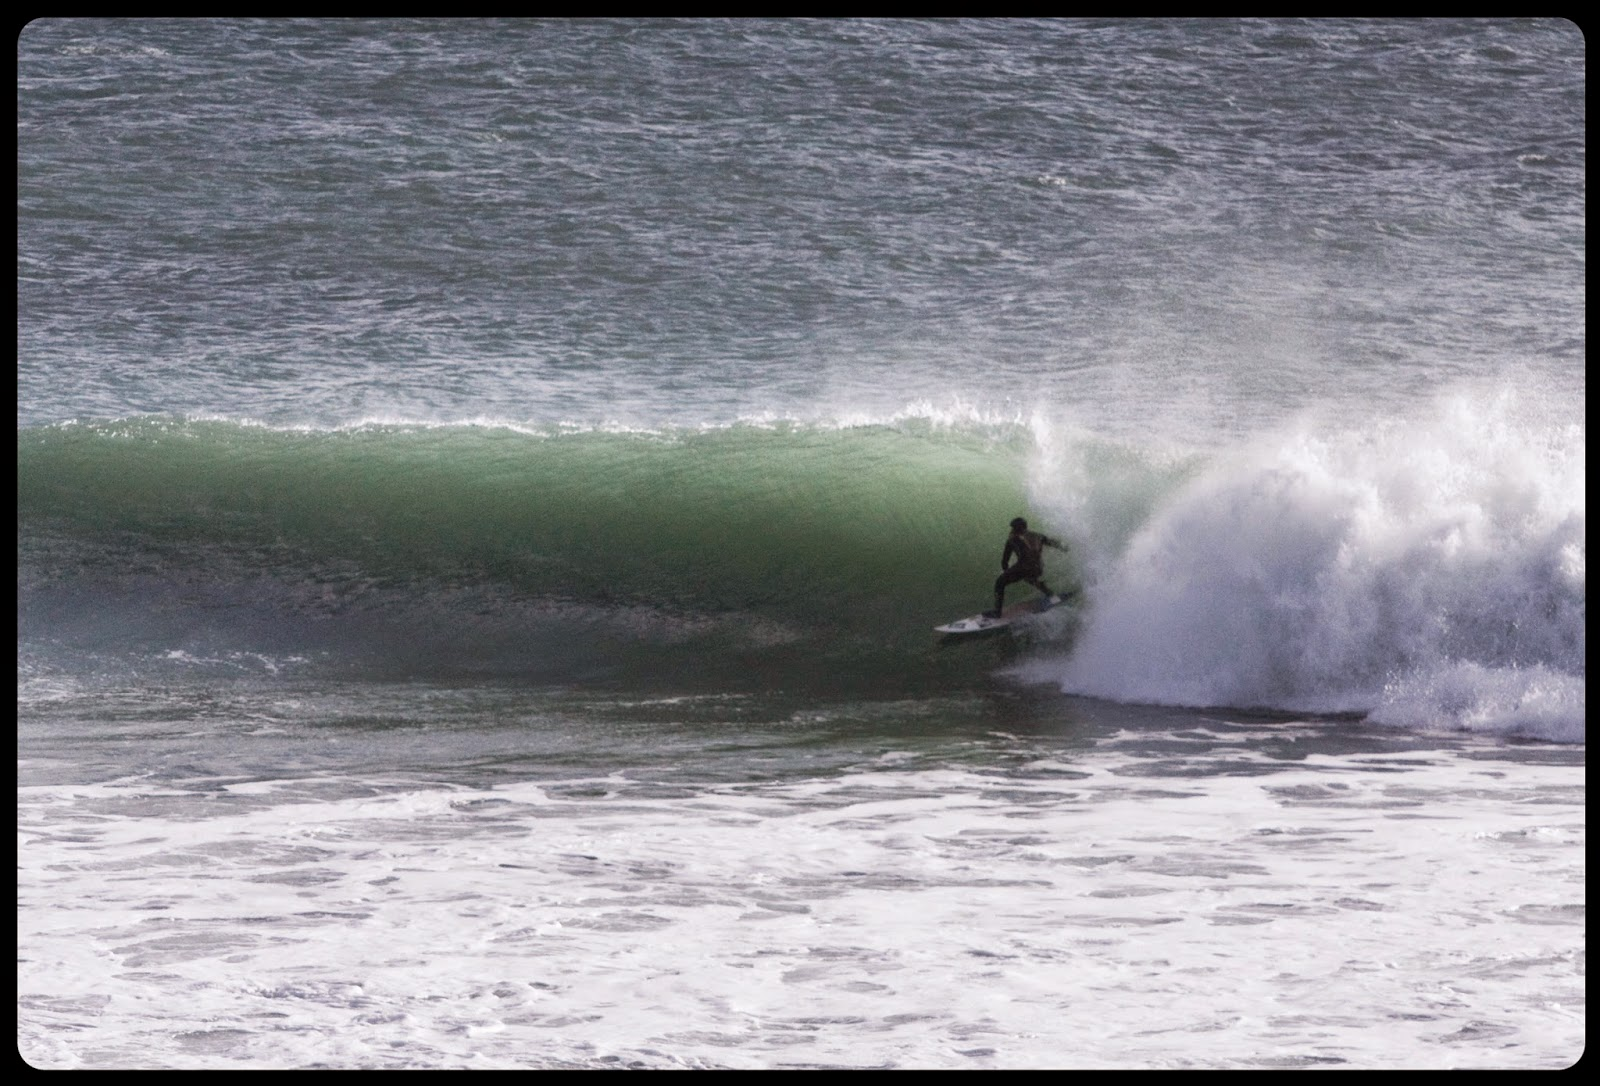 Surfing, Barrel, Porthleven, Cornwall